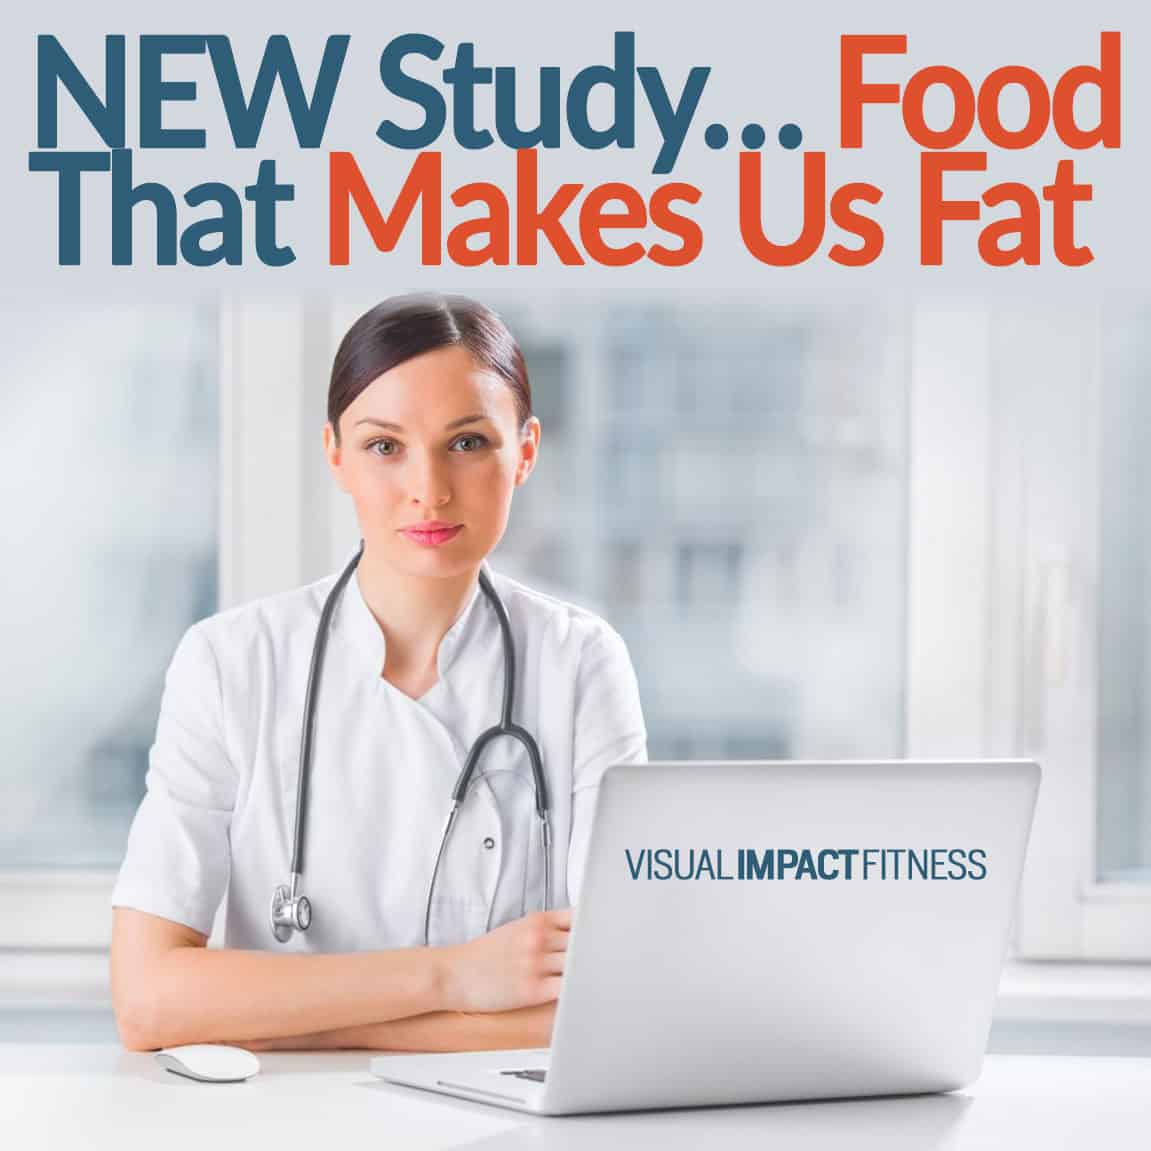 NEW Study on Food That Makes Us Fat